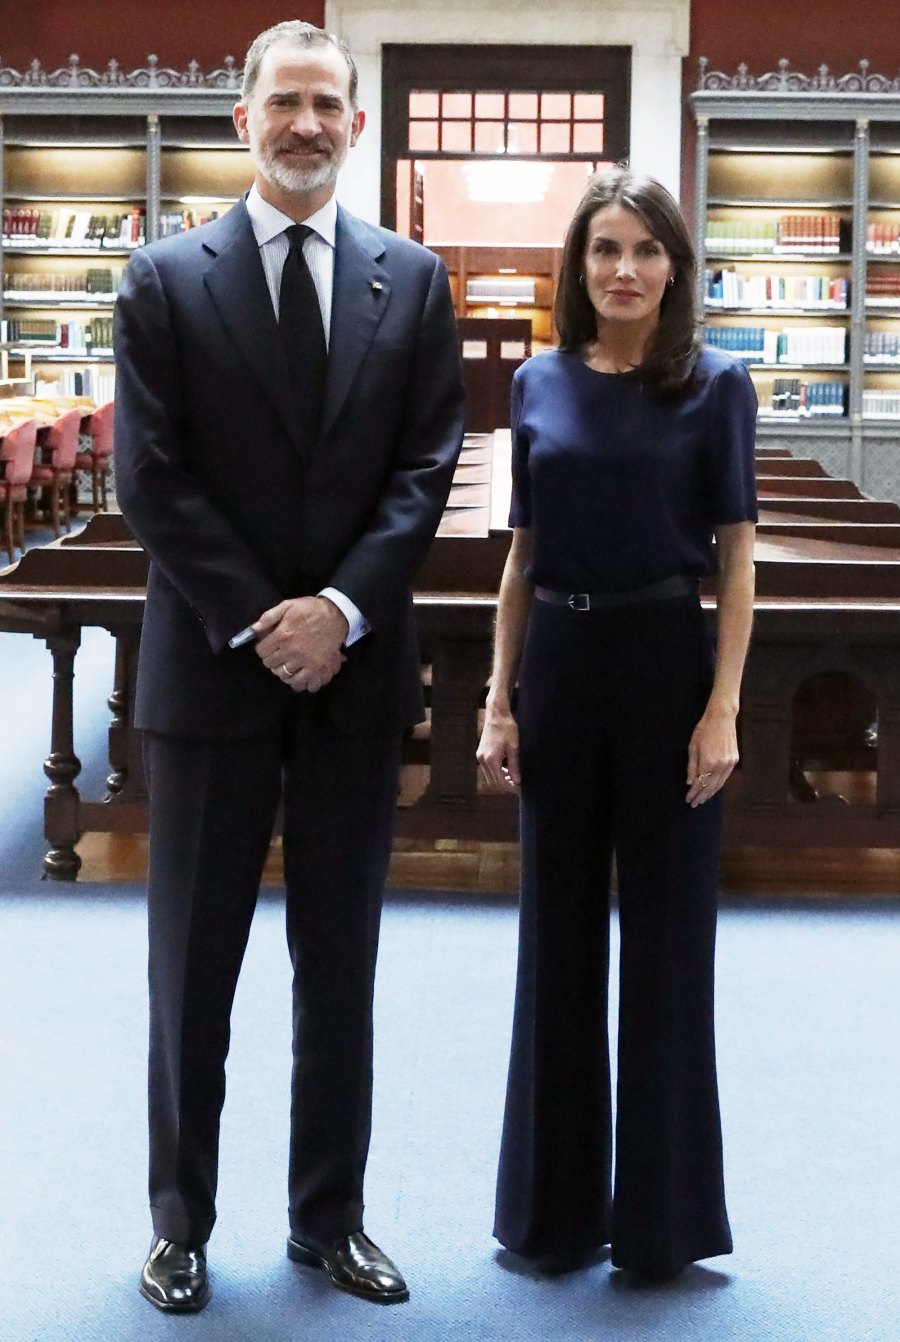 Queen Letizia Does Flared Pants in All the Right Ways